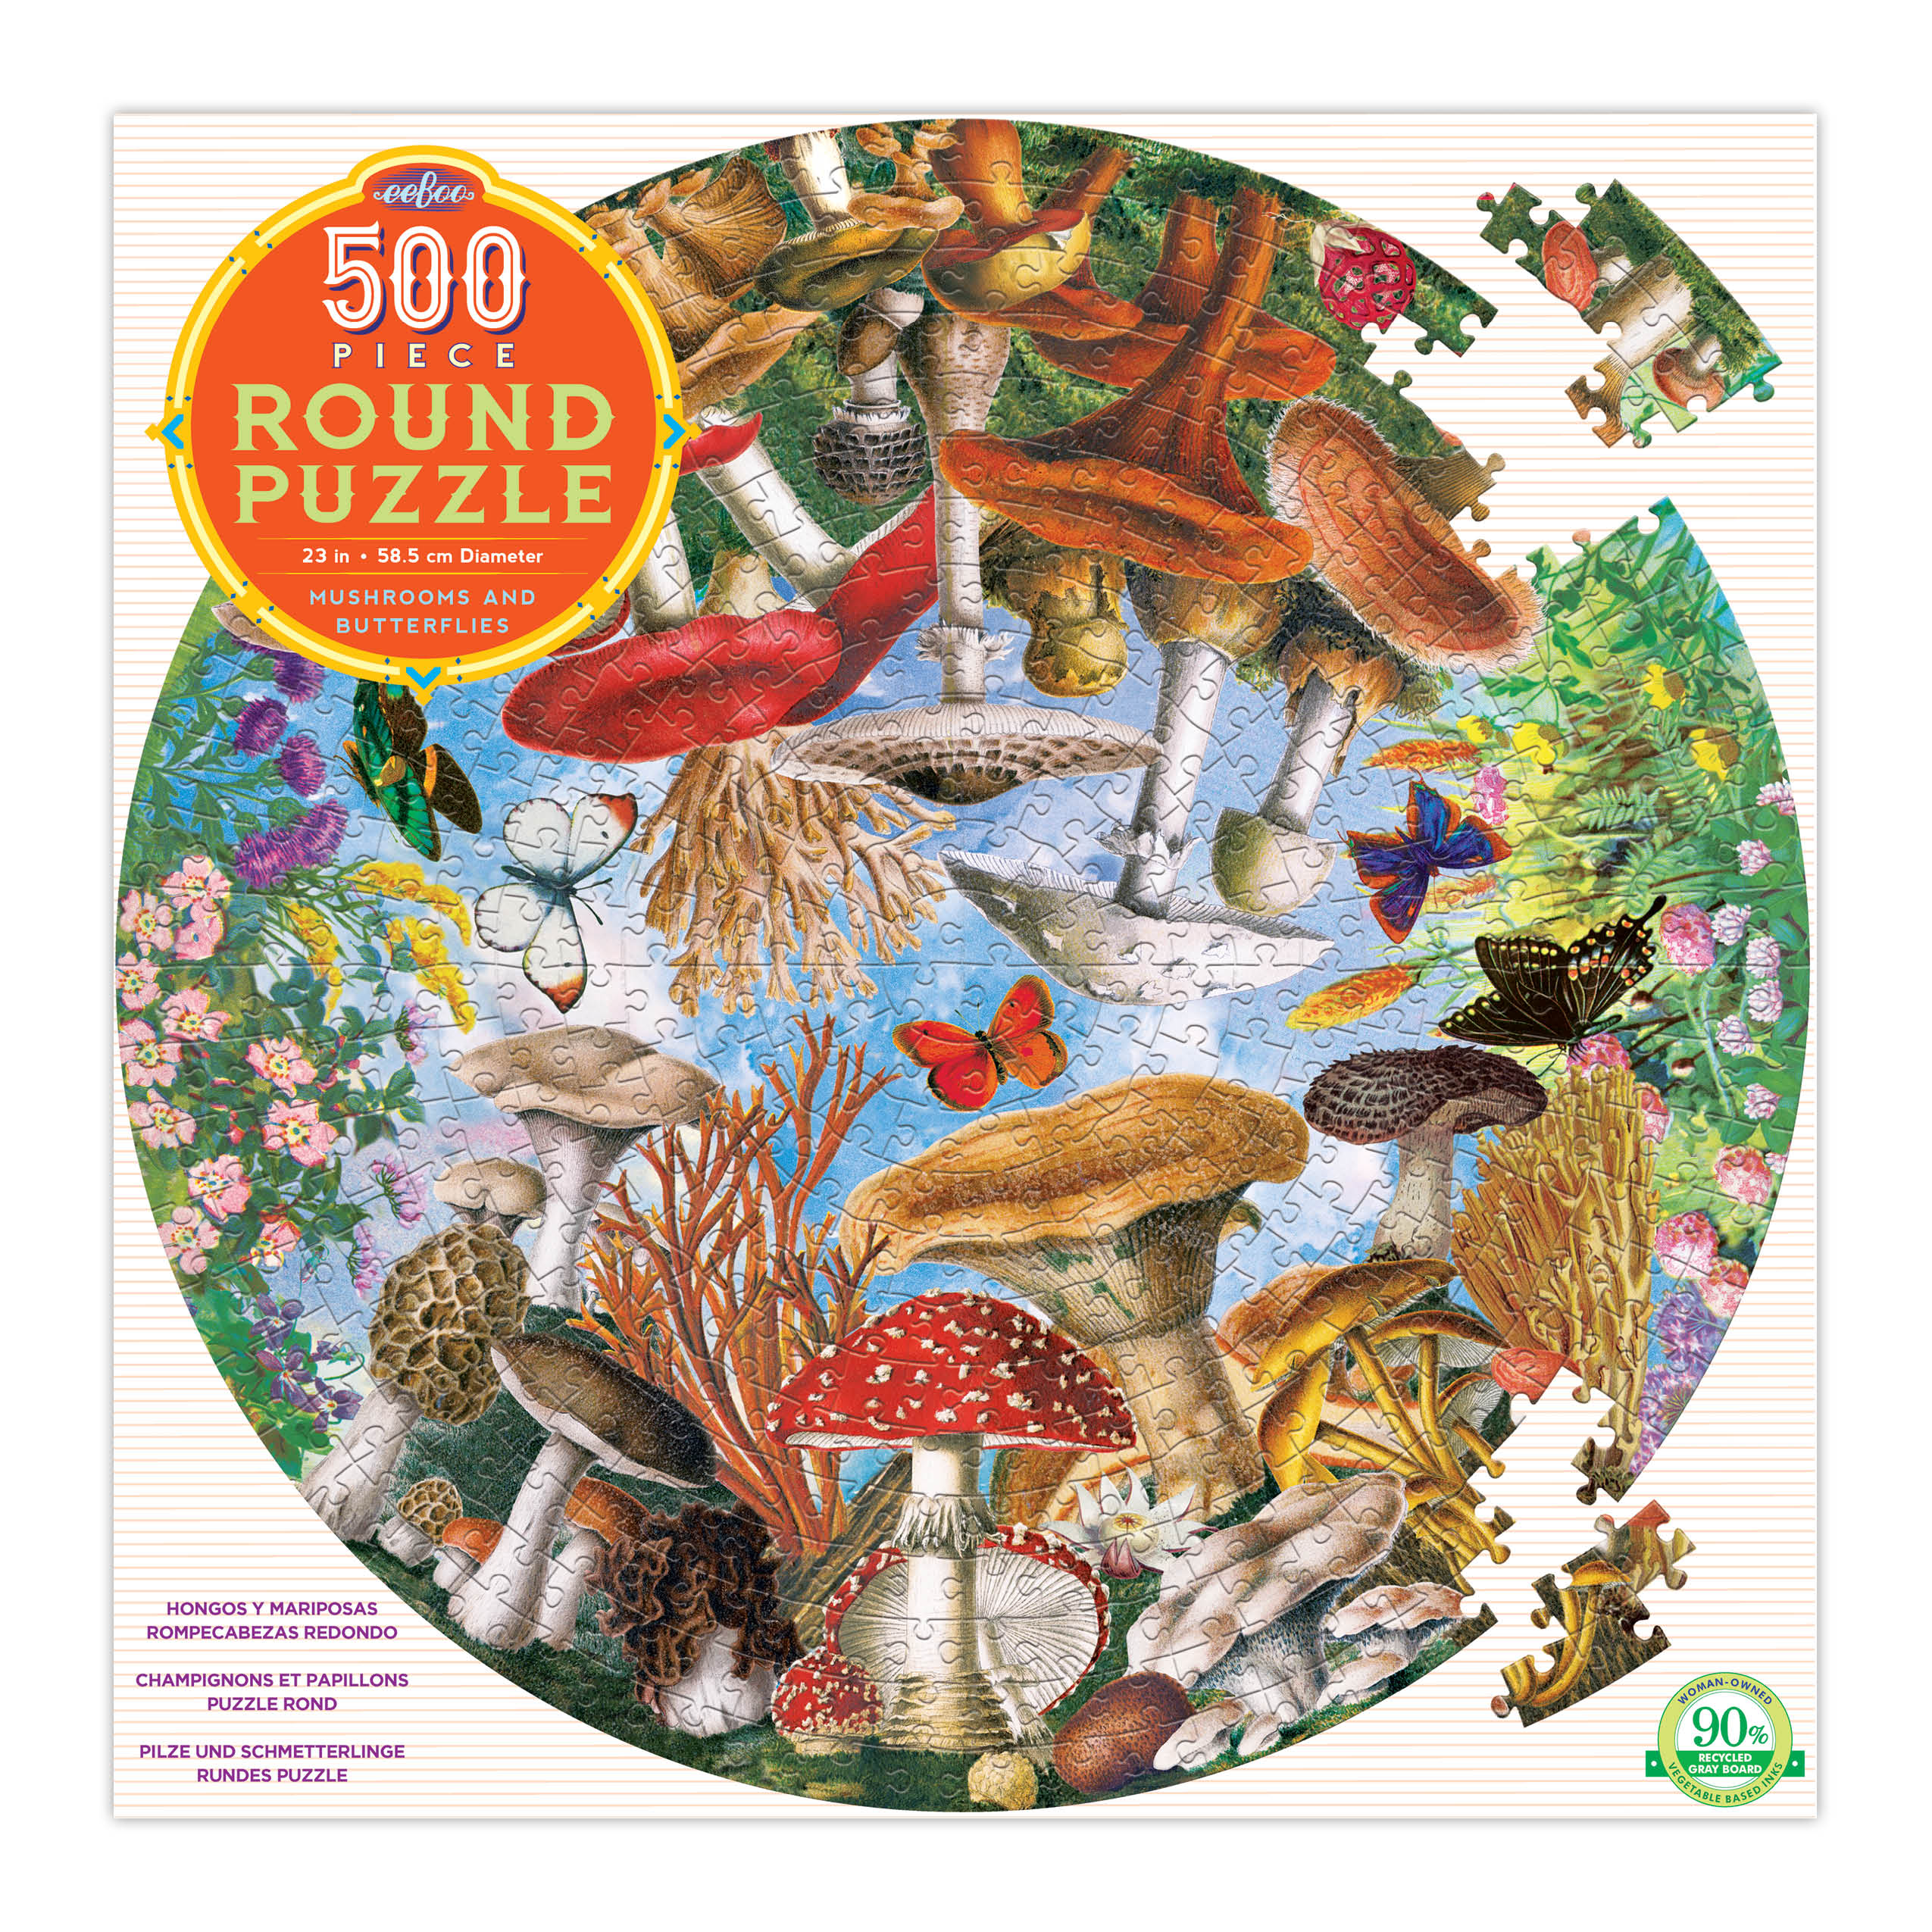 mushrooms and butterflies round puzzle - 500 piece